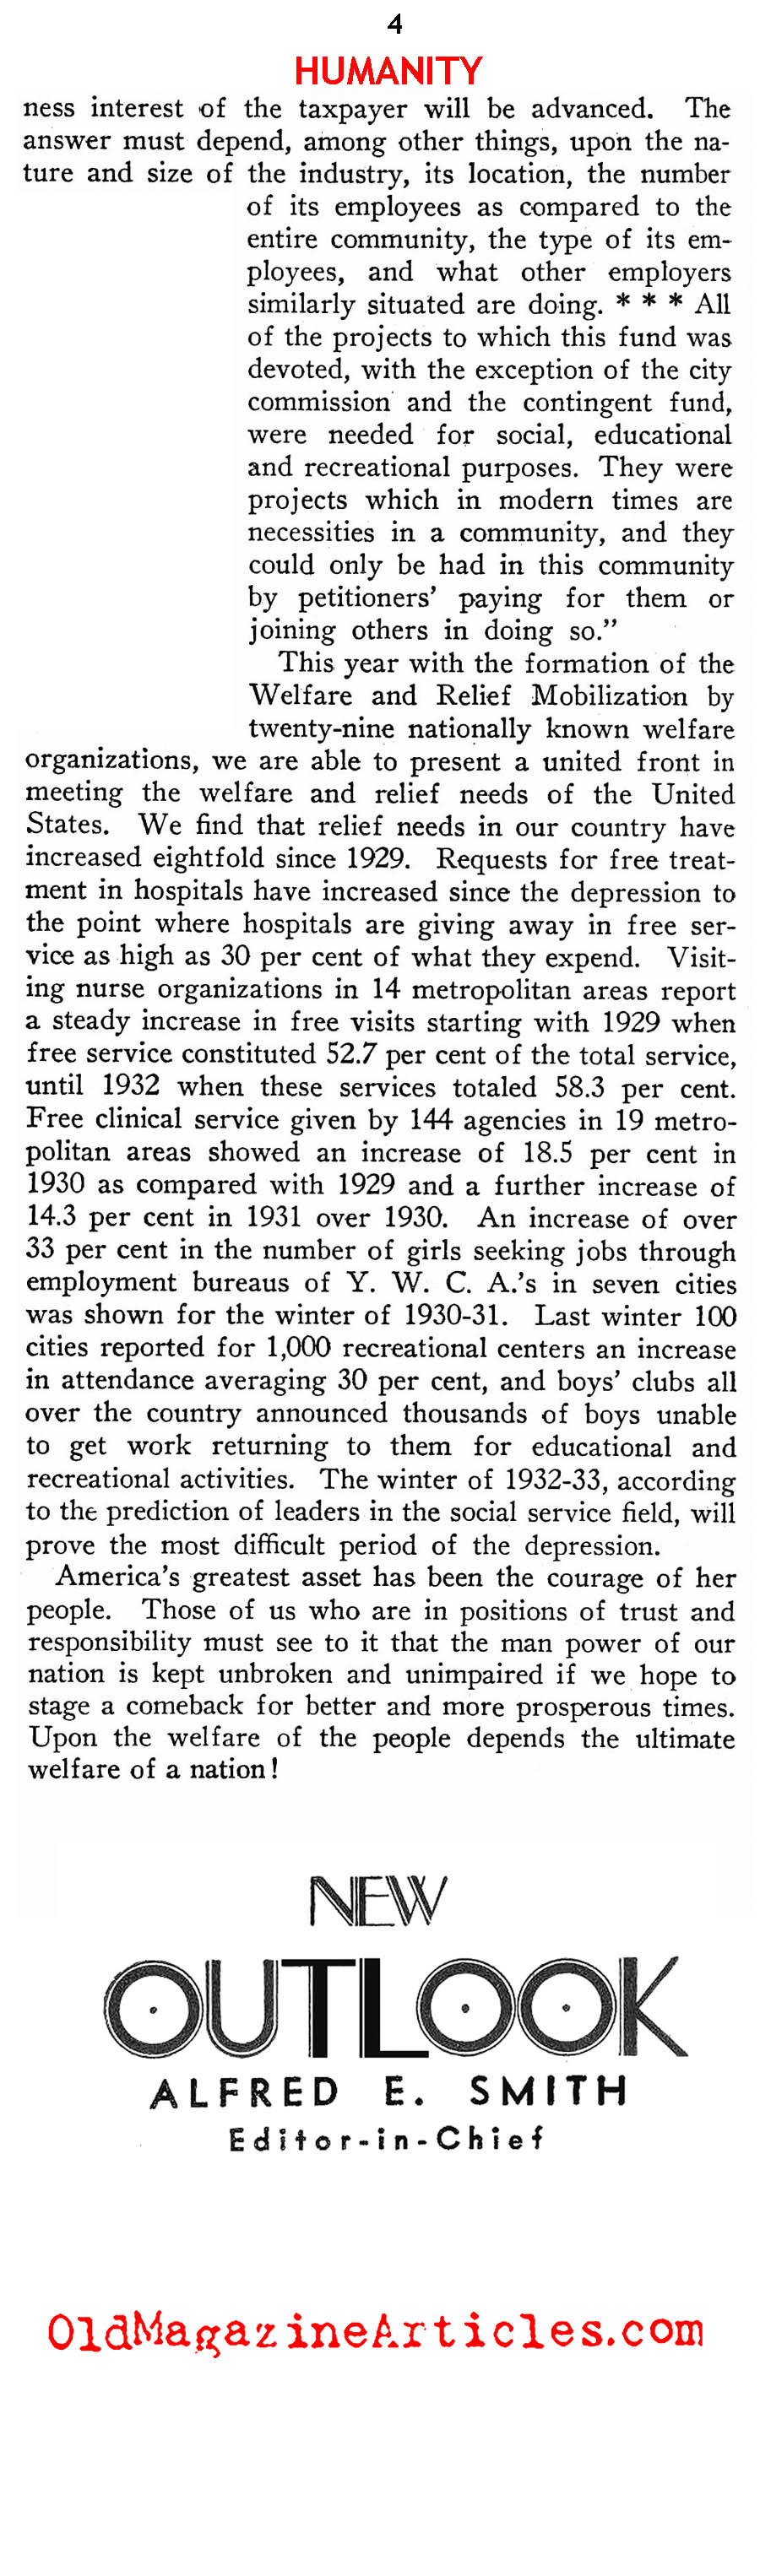 Private Charity During The Great Depression (New Outlook Magazine, 1932)